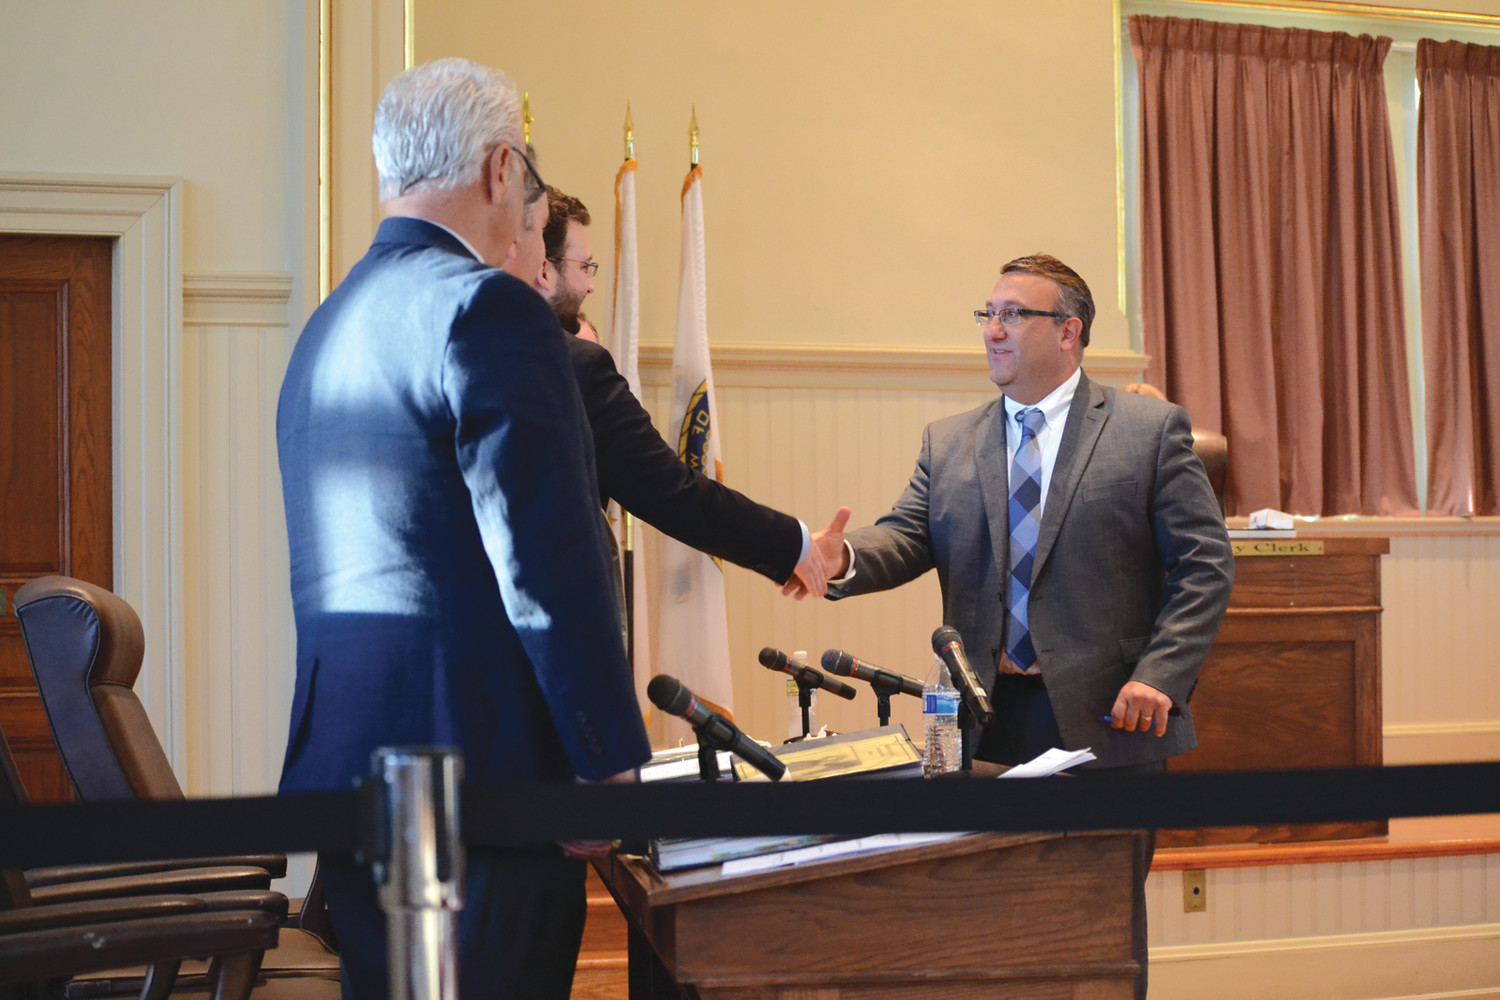 VICTORY LAP: Steve Merolla shakes the hands of his fellow council members following his nomination and approval as City Council President.